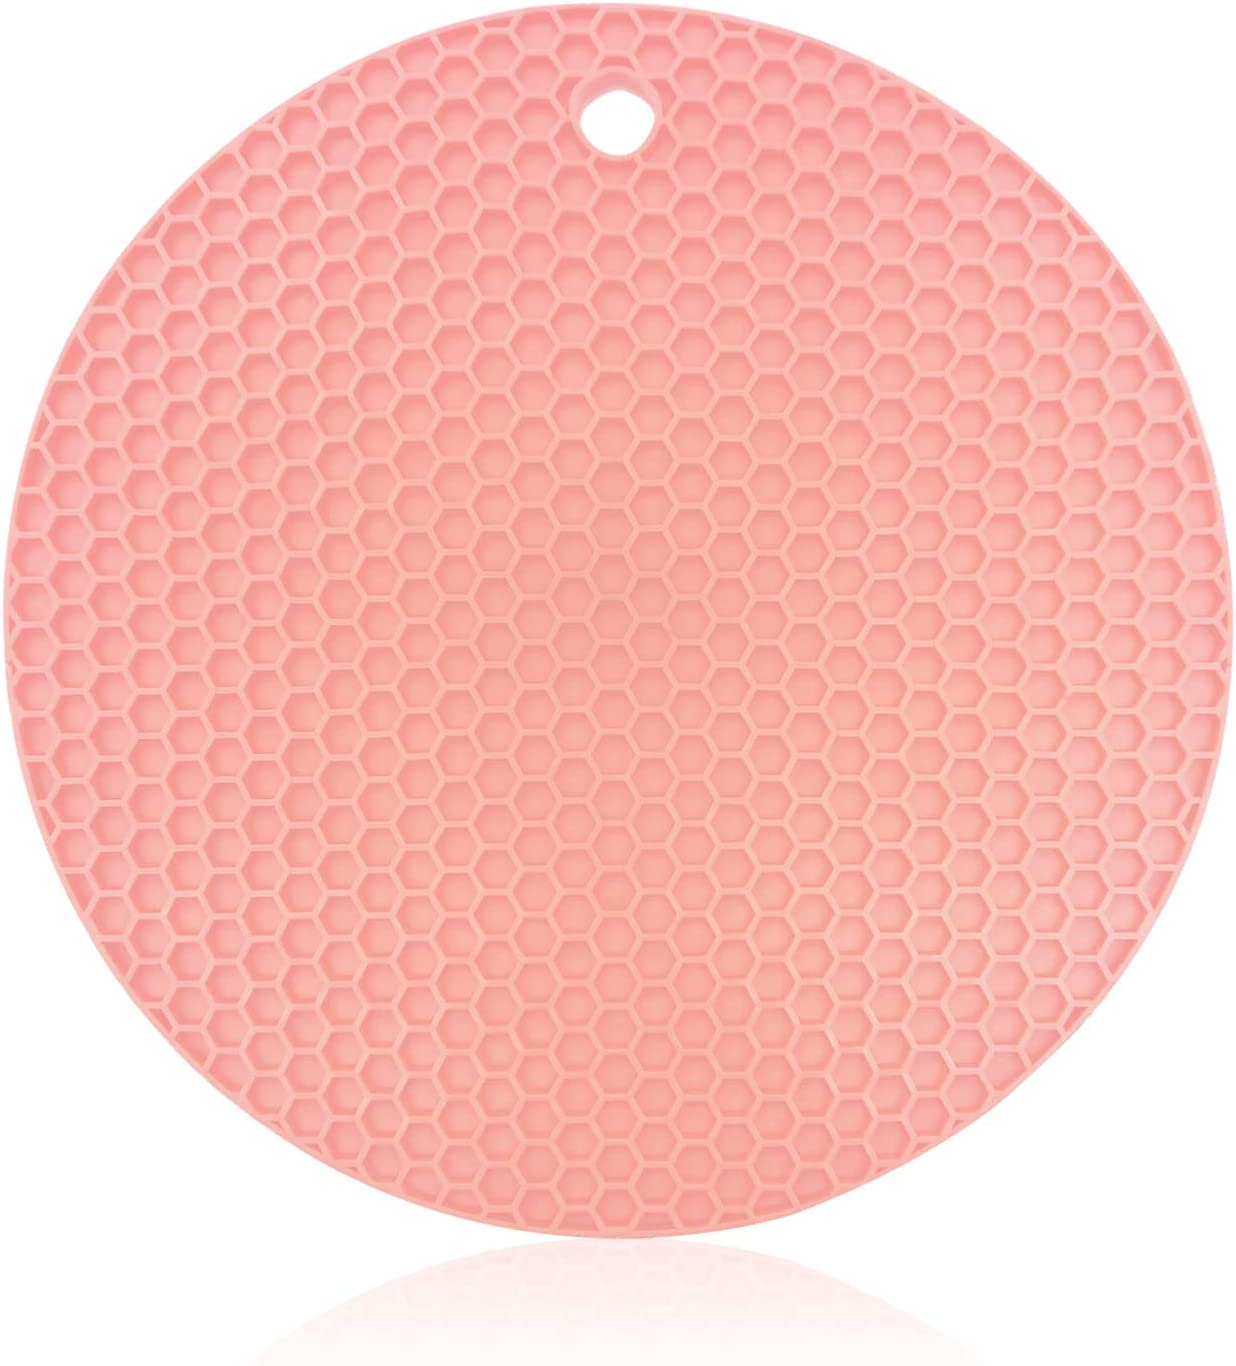 Honeycomb Pot Holder Trivet Mats Heat Resistant Online limited product Table Di Ranking TOP7 KUFUNG